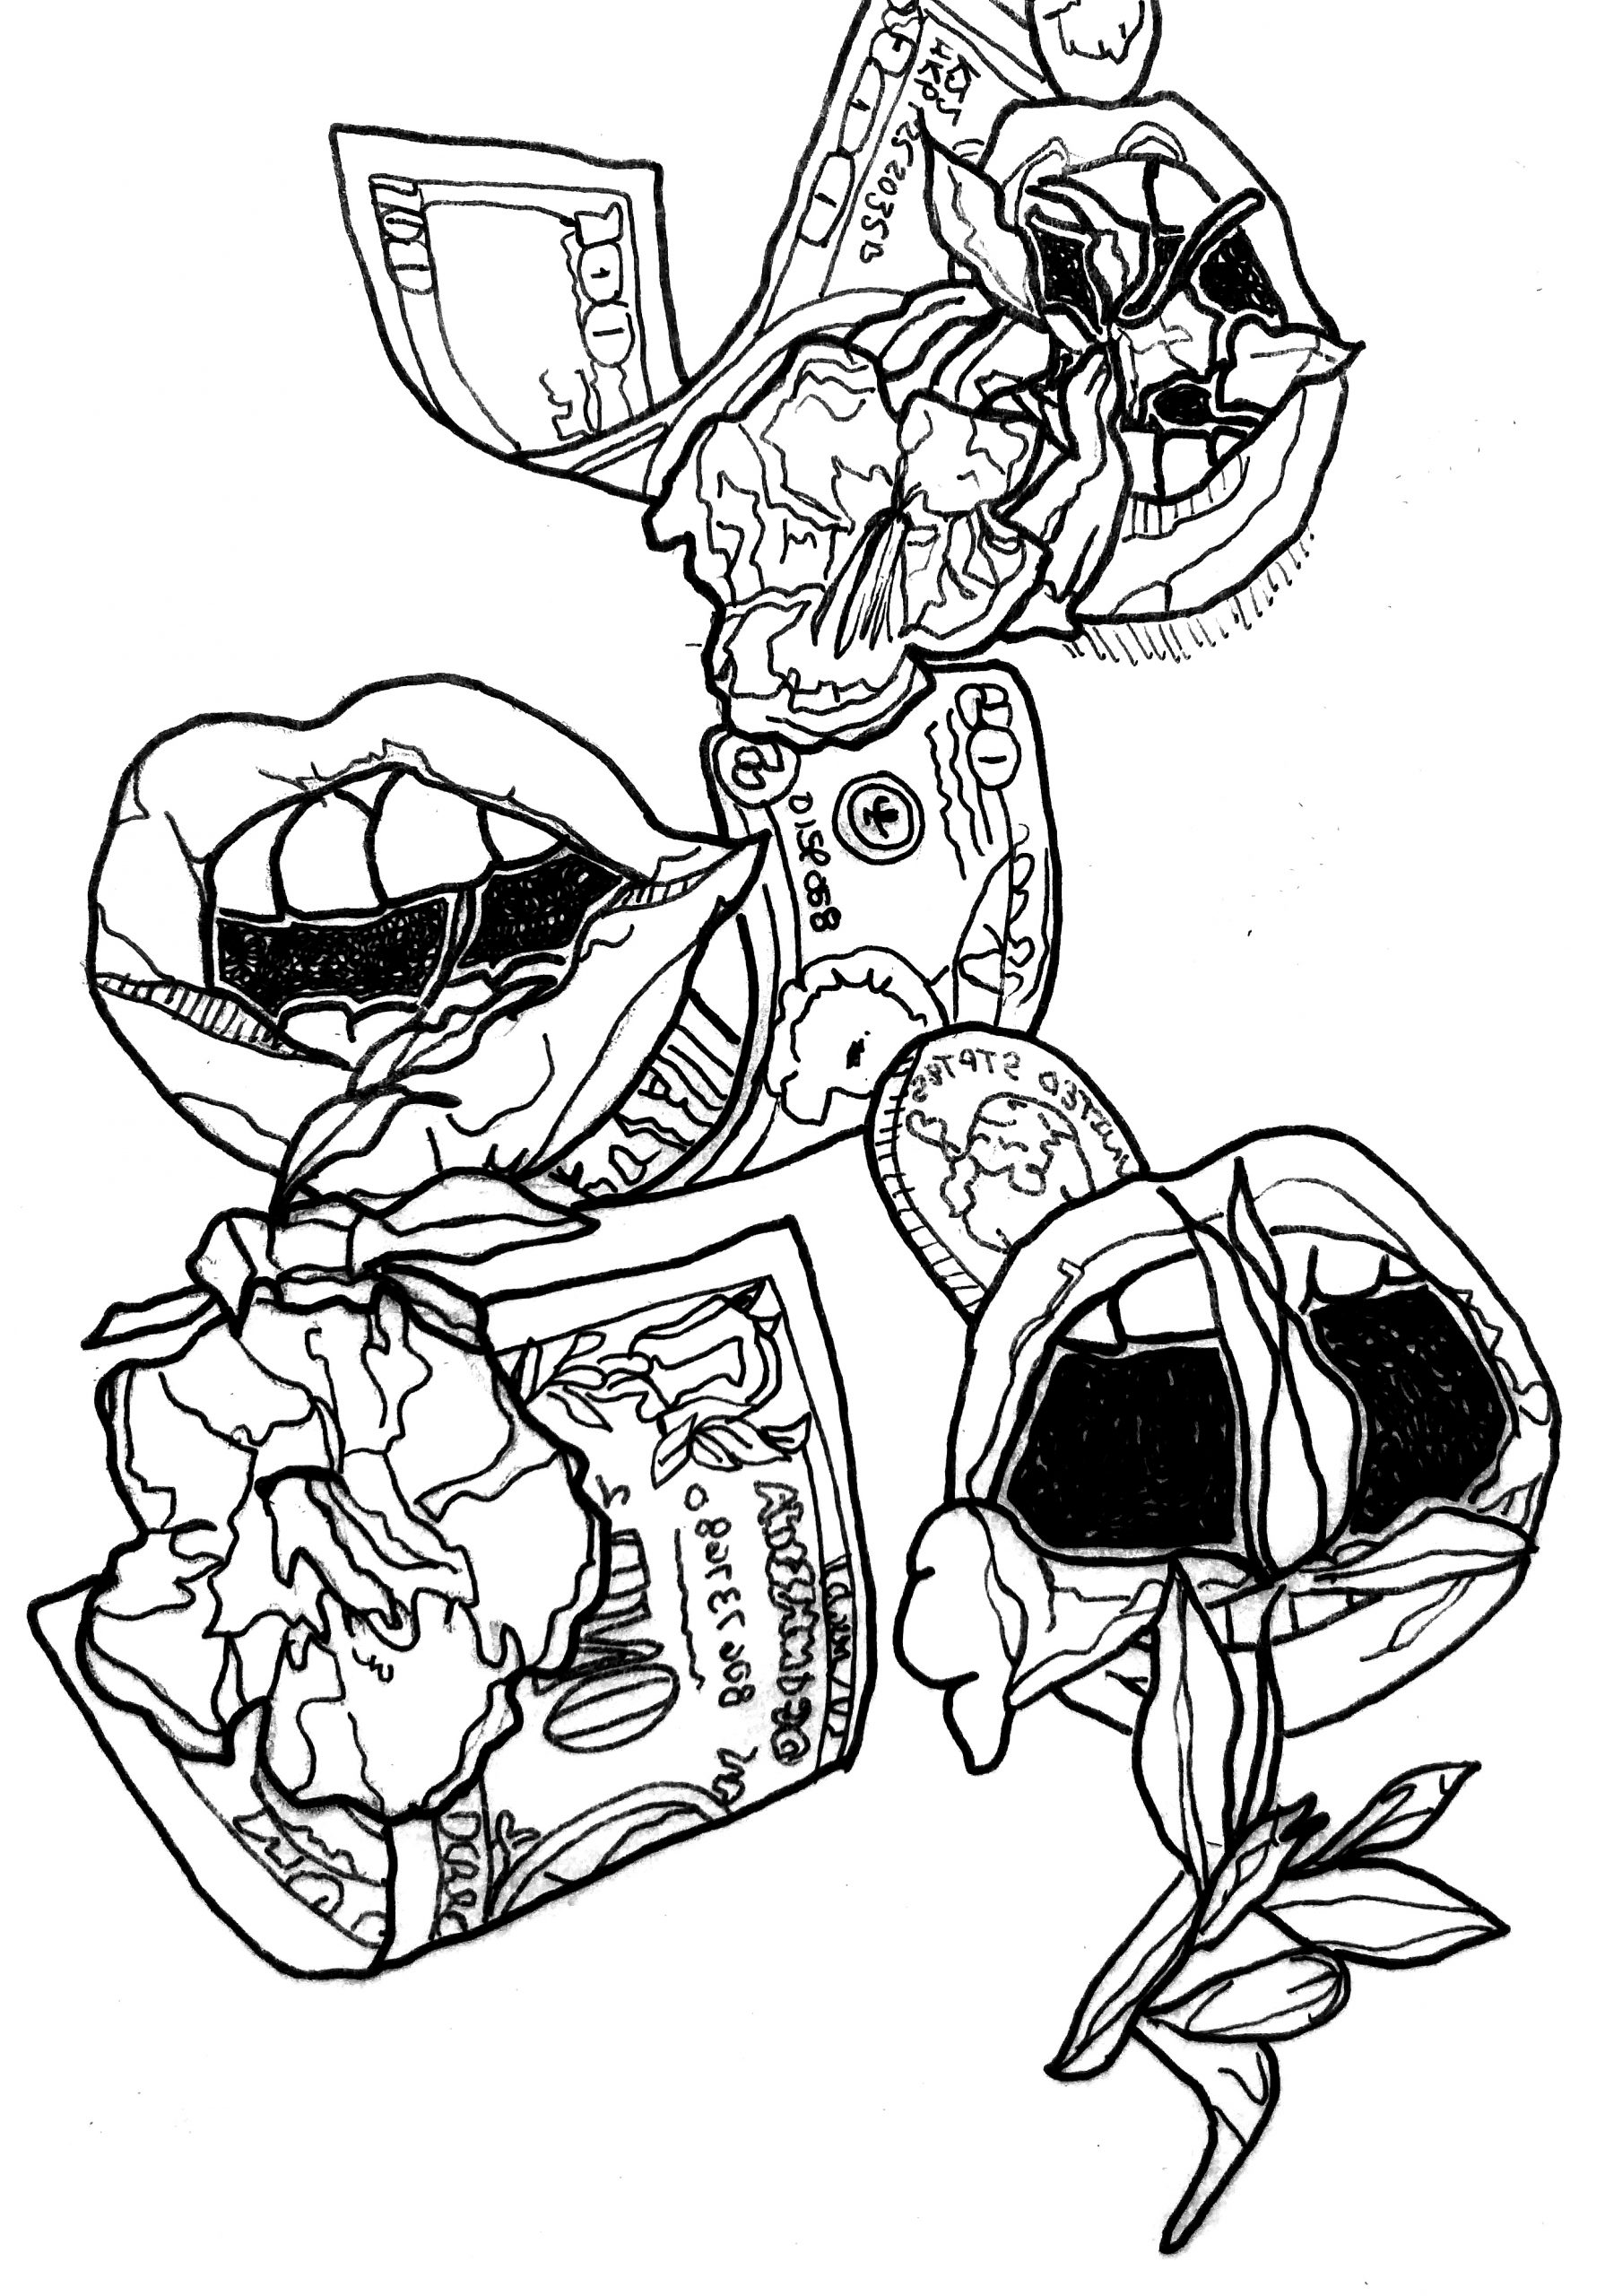 A black and white illustration of a collage of mouths, money, and flowers. The mouths are all open and have flowers and leaves coming out of them to varying degrees. There's a 100 dollar bill, a 20 dollar bill, a one dollar bill, and a quarter floating and falling. Illustration by Rachel Speck.